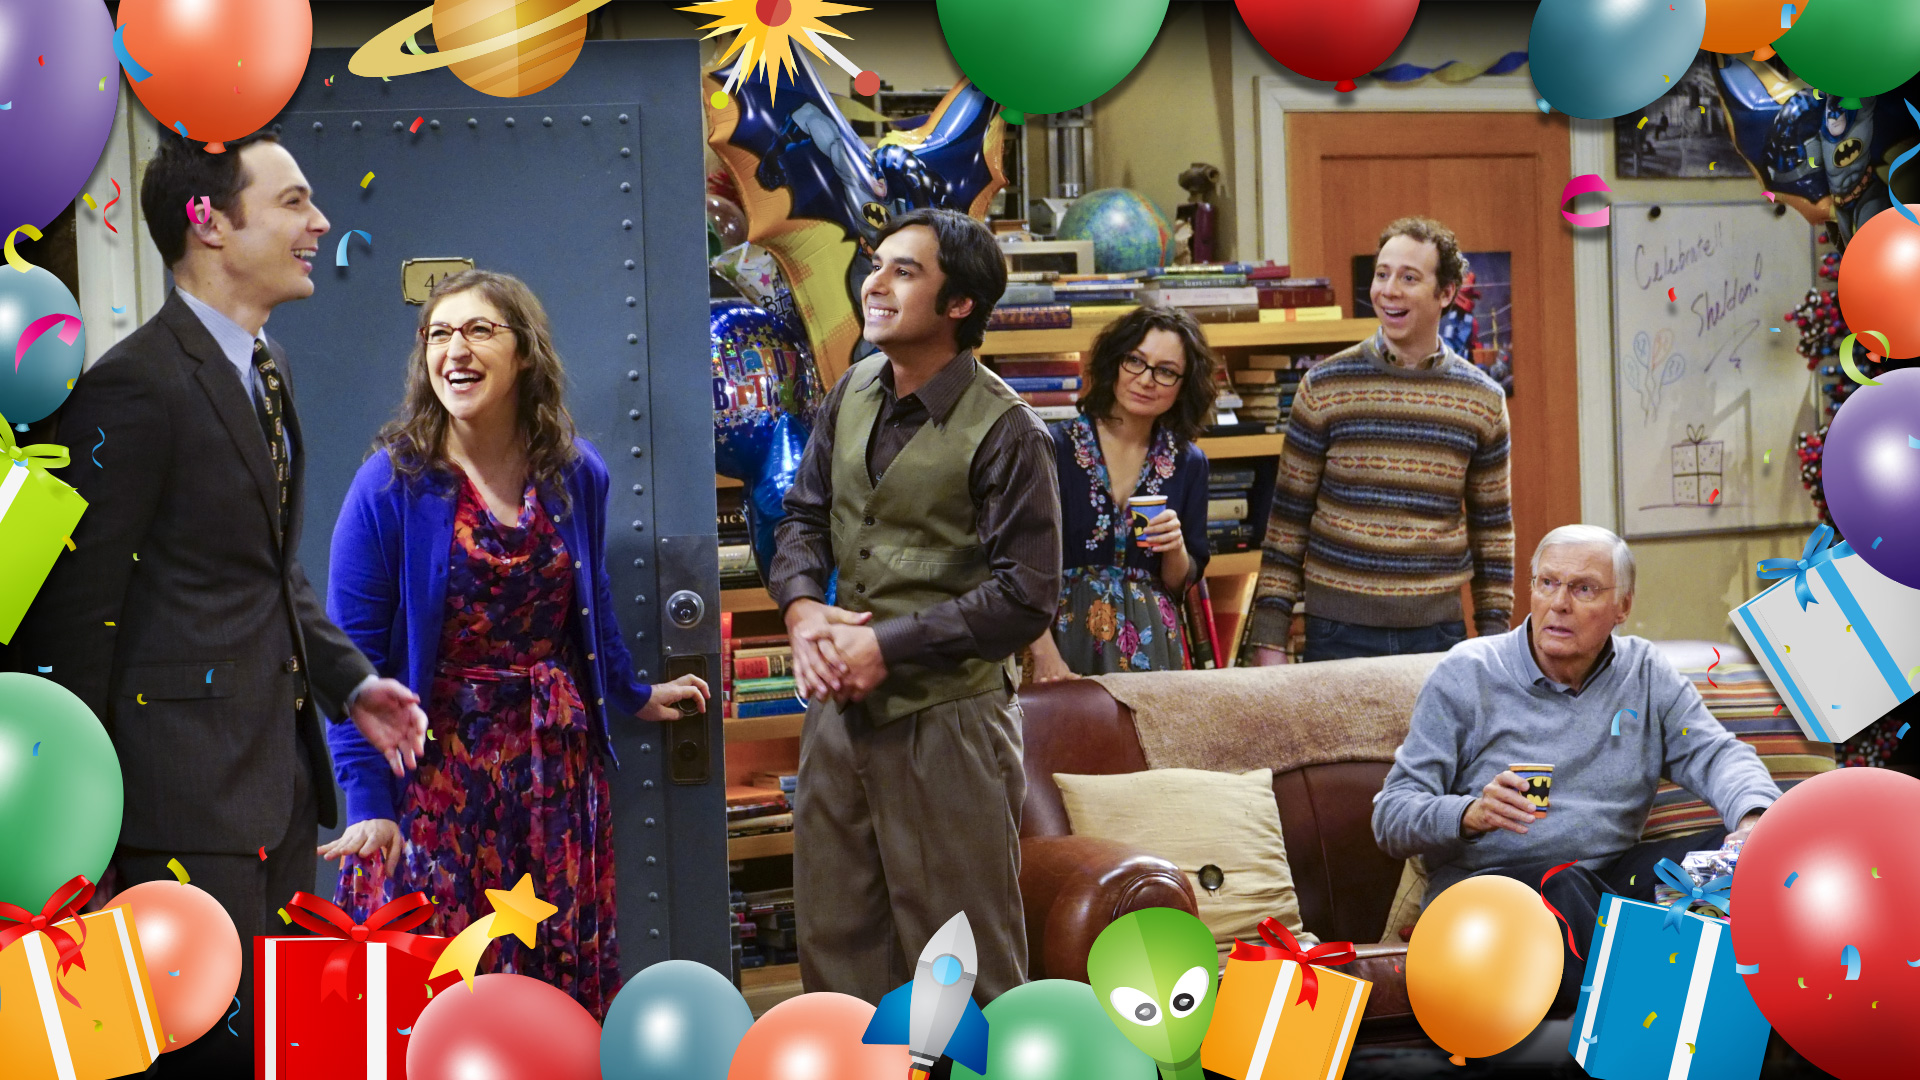 Sheldon is all smiles when he arrives at his birthday party.